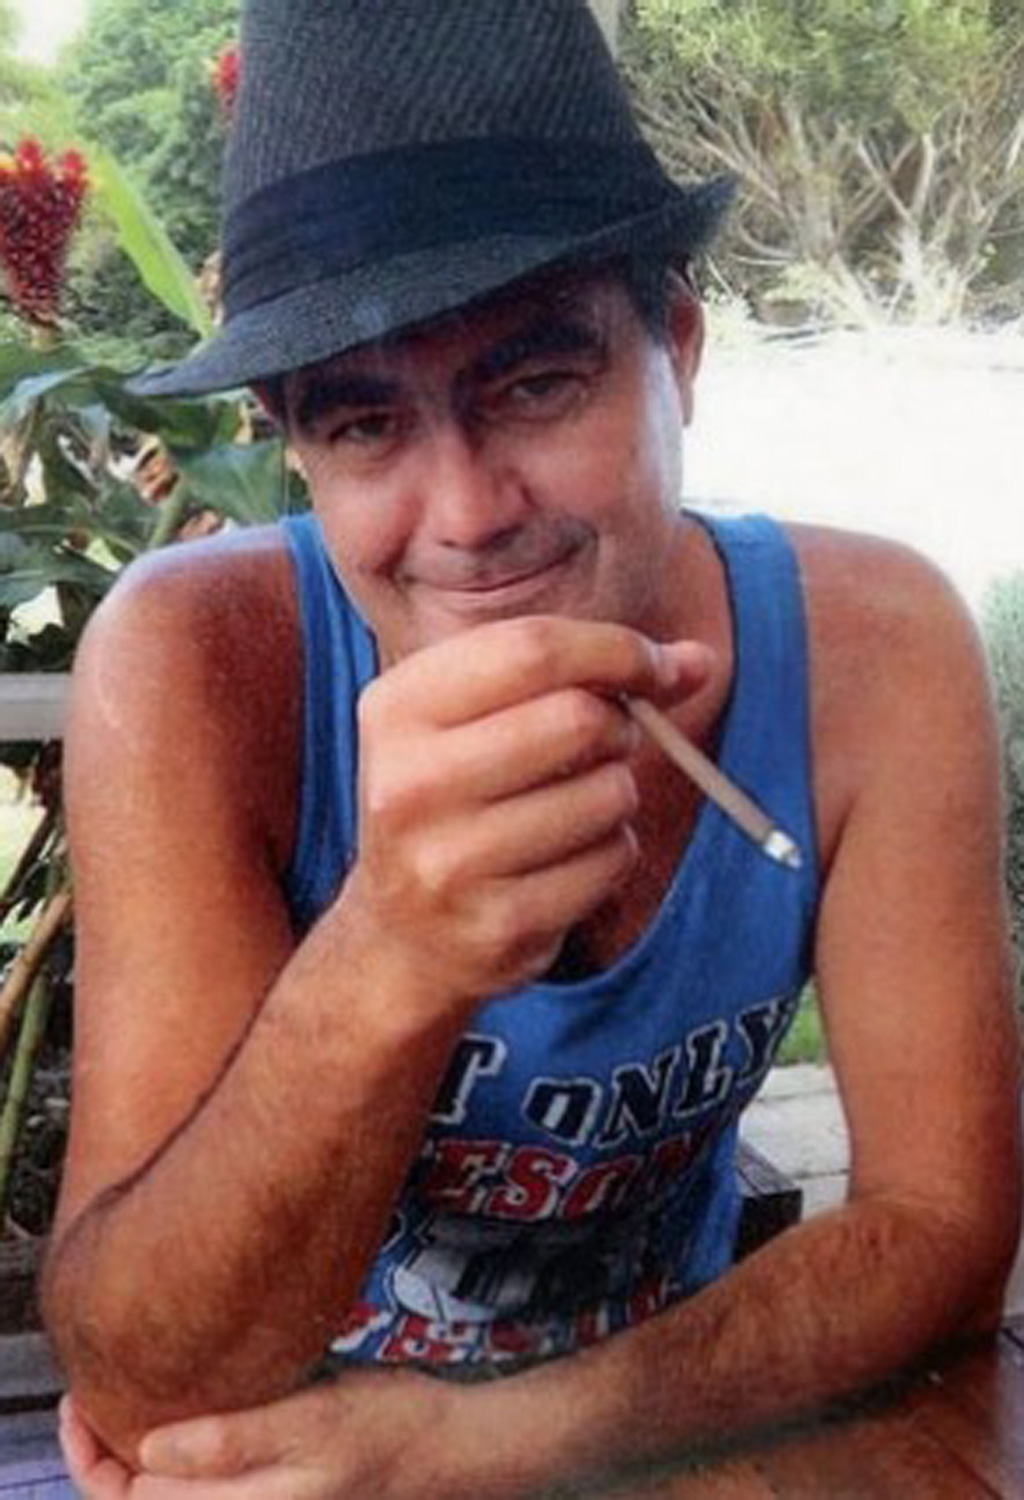 Robbie Parry, 41, was allegedly shot with a .22 sawn-off rifle in March this year. (Supplied)